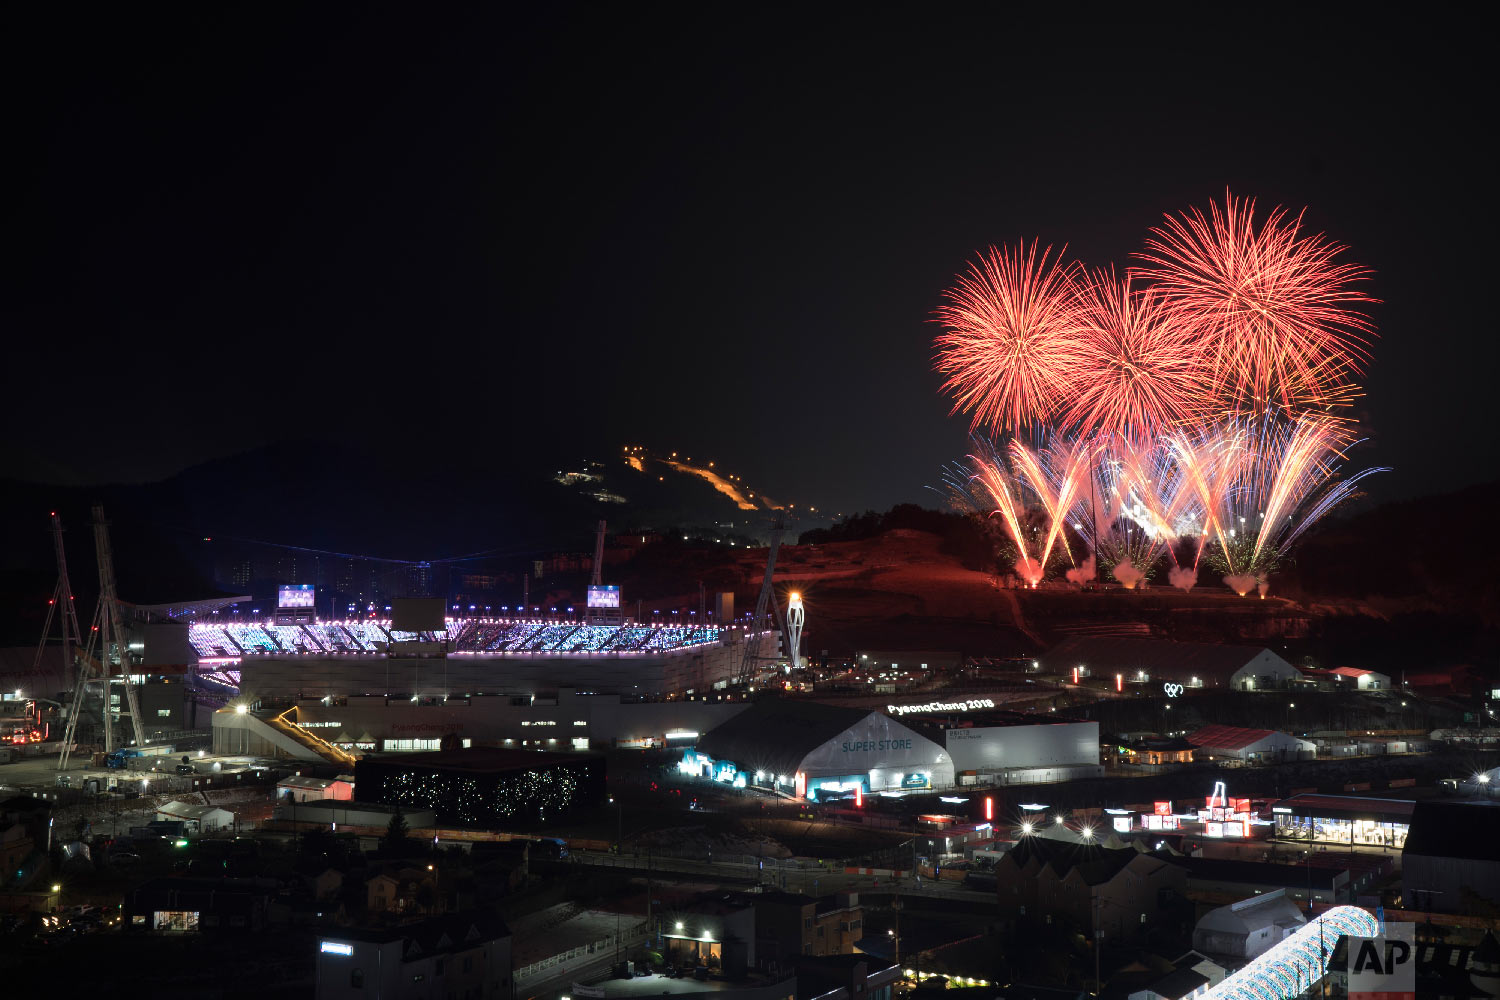 Fireworks explode behind the Olympic Stadium during the closing ceremony of the 2018 Winter Olympics in Pyeongchang, South Korea, Sunday, Feb. 25, 2018. (AP Photo/Felipe Dana)